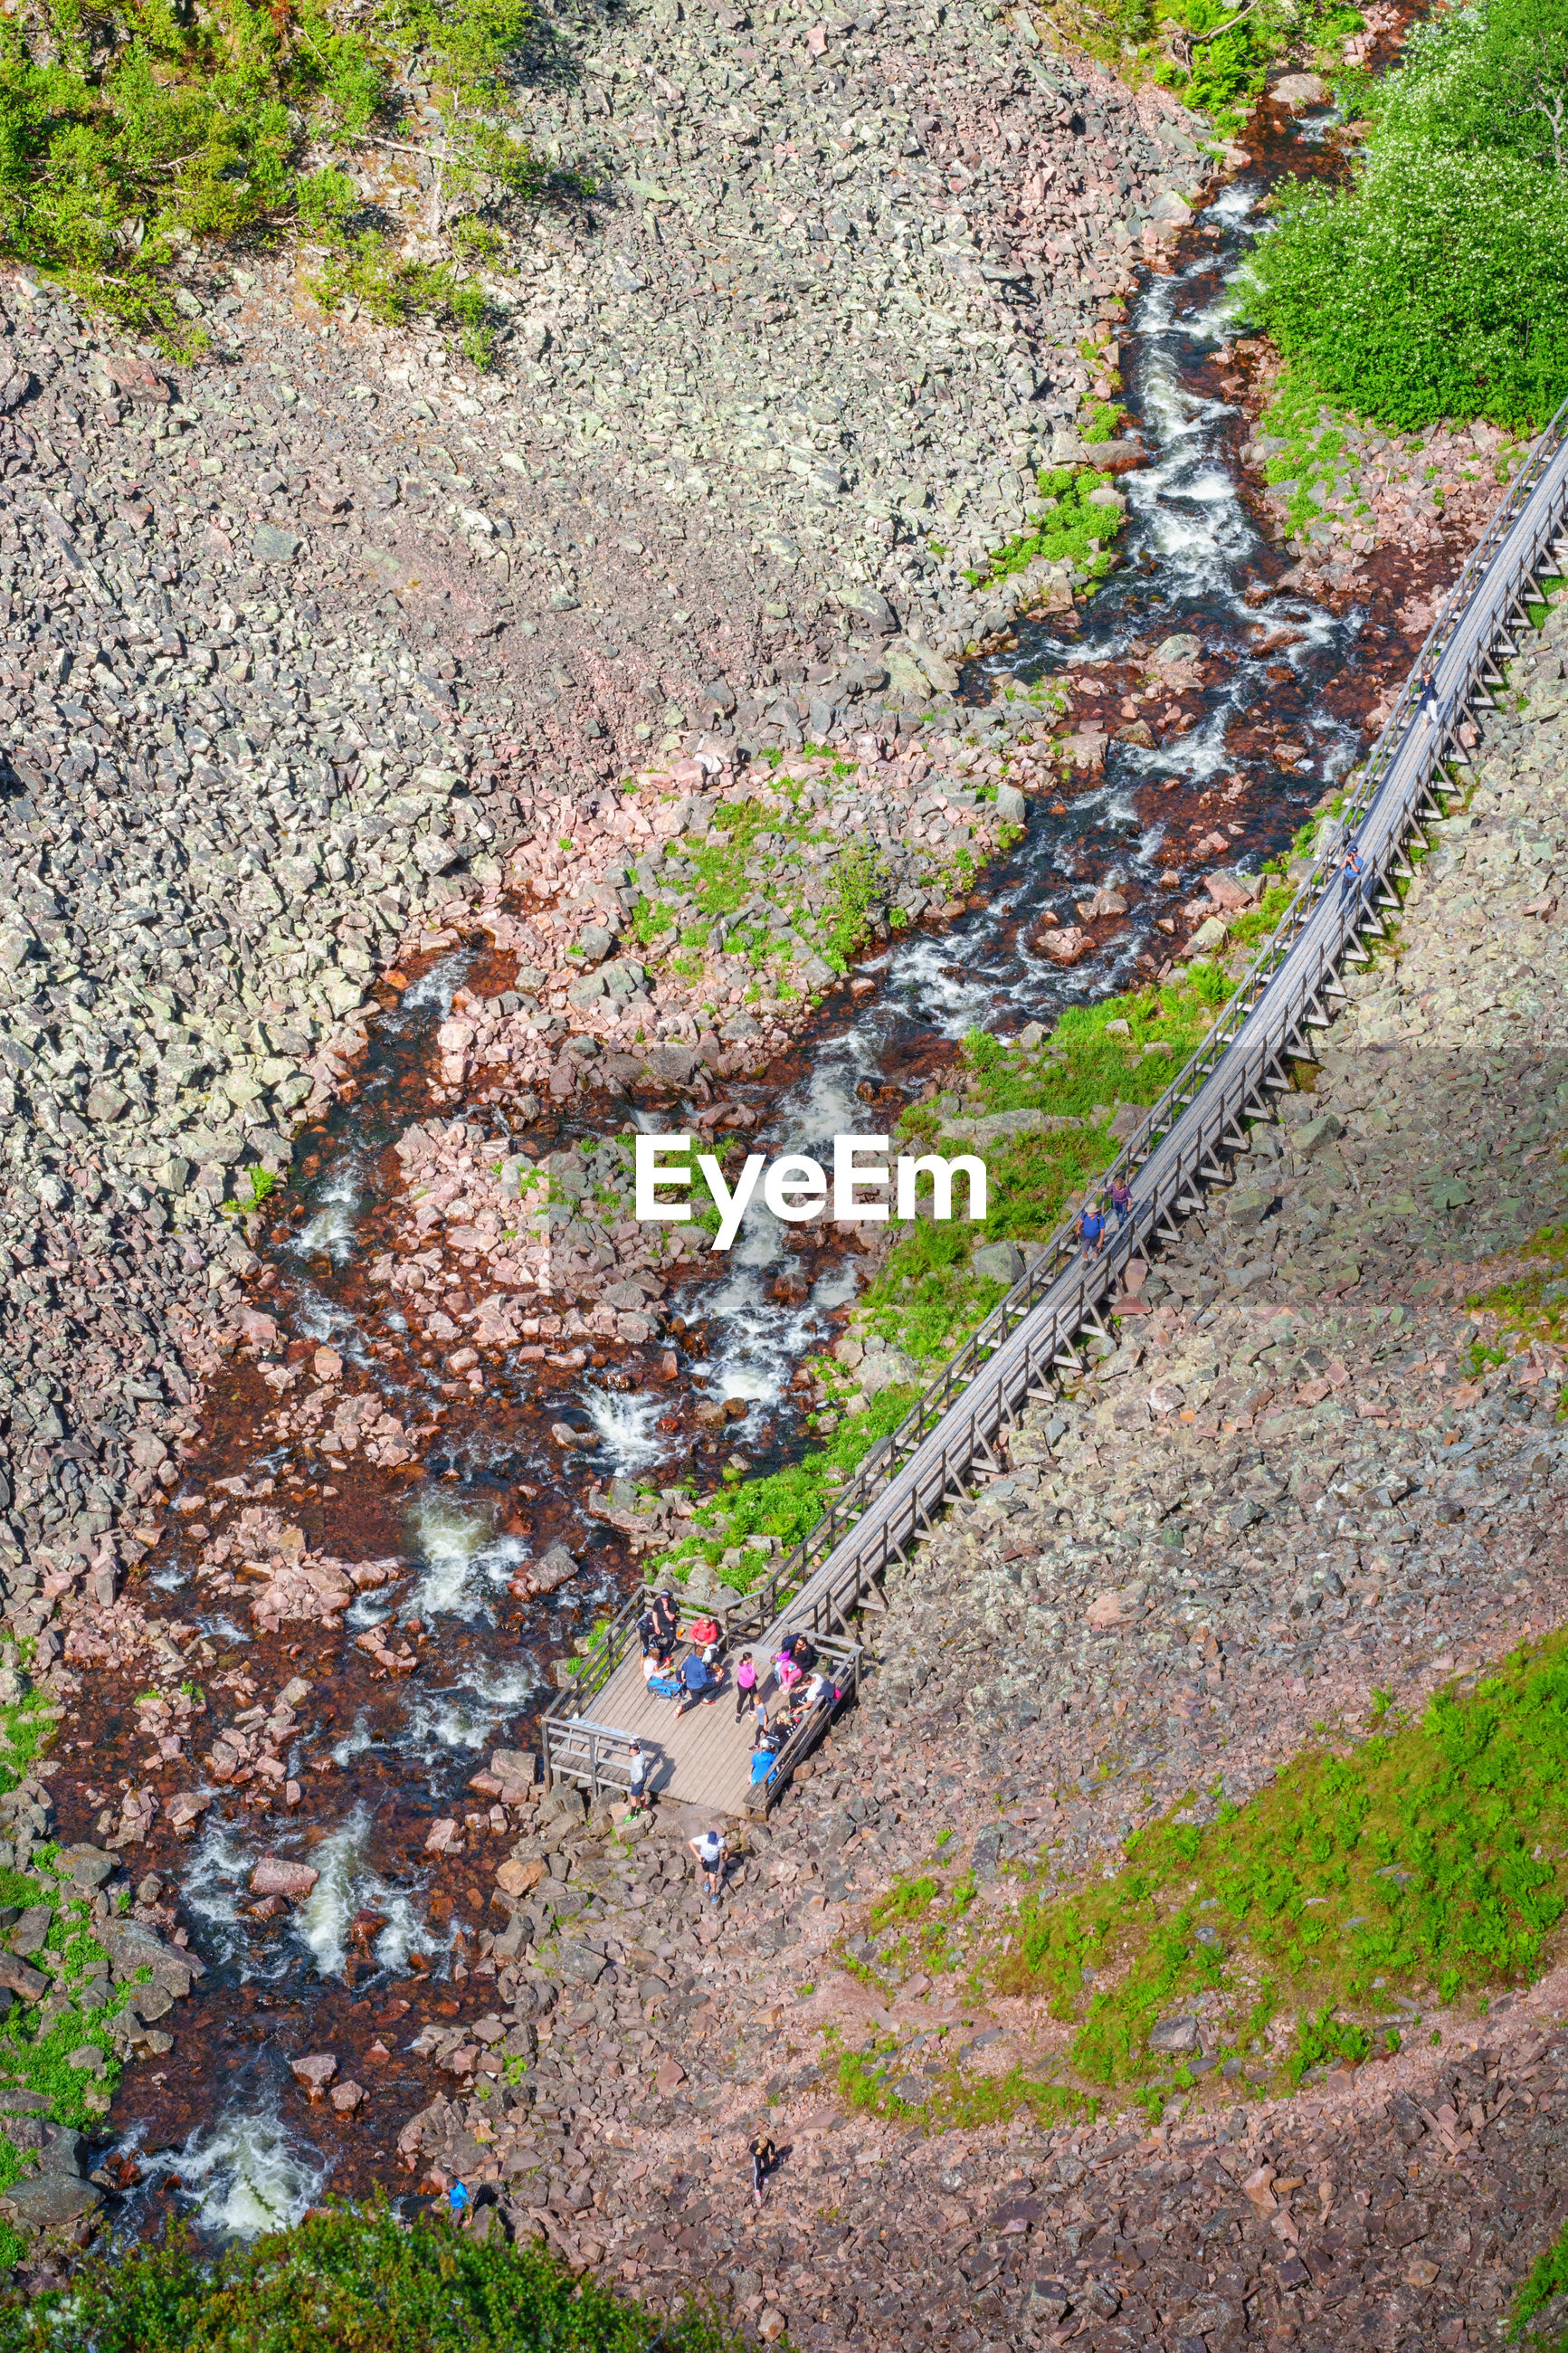 HIGH ANGLE VIEW OF PEOPLE WALKING ON FOOTPATH BY MOUNTAIN